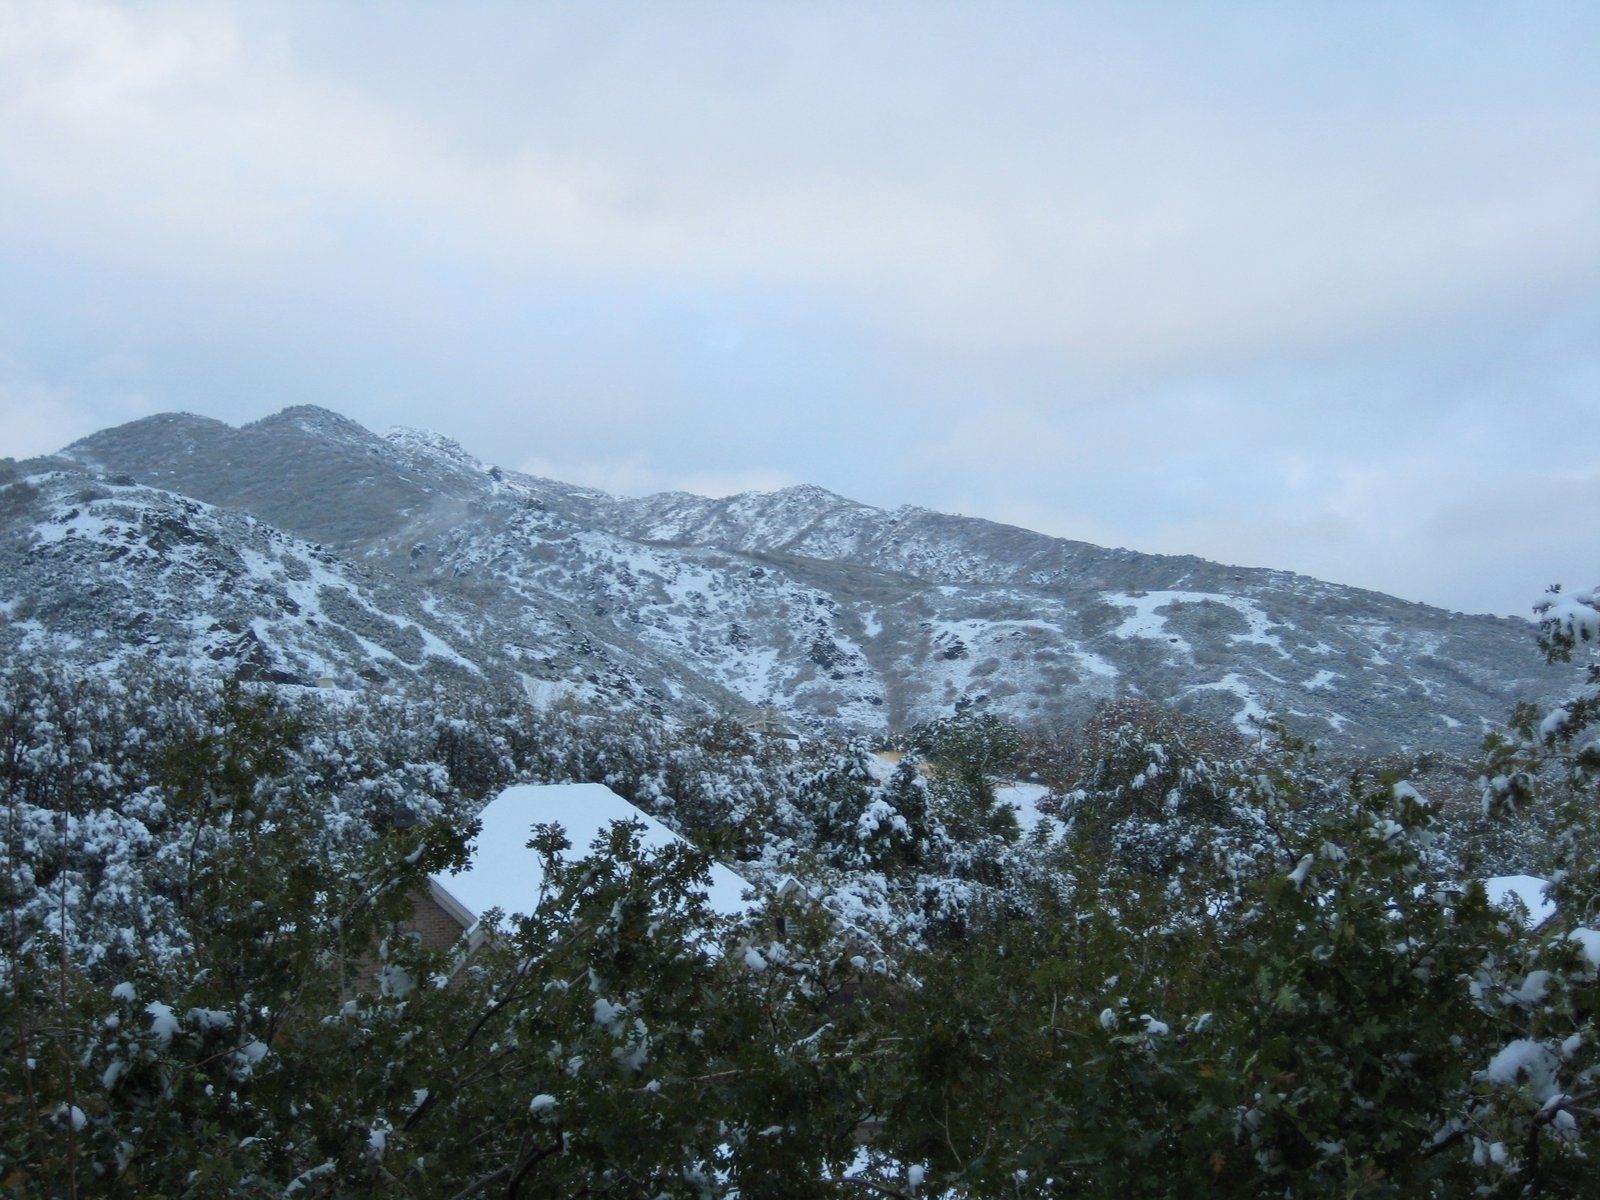 Mountain directly above my house.